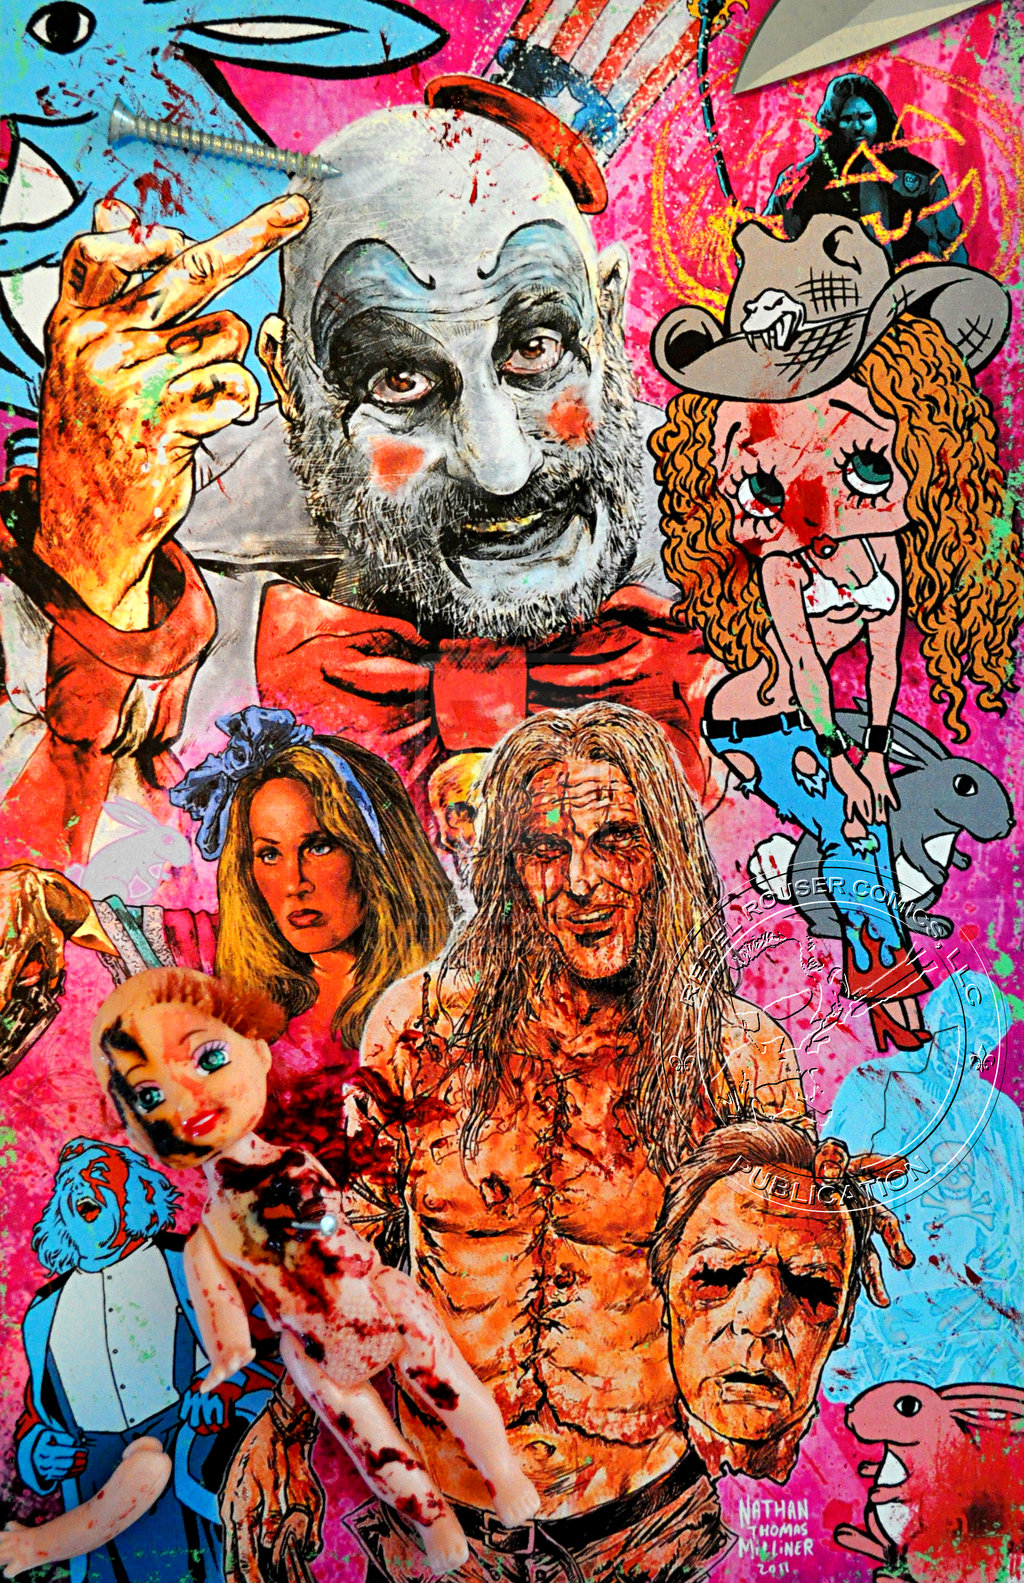 Hd Wallpapers 1080p Love Quotes Download House Of 1000 Corpses Wallpaper Gallery